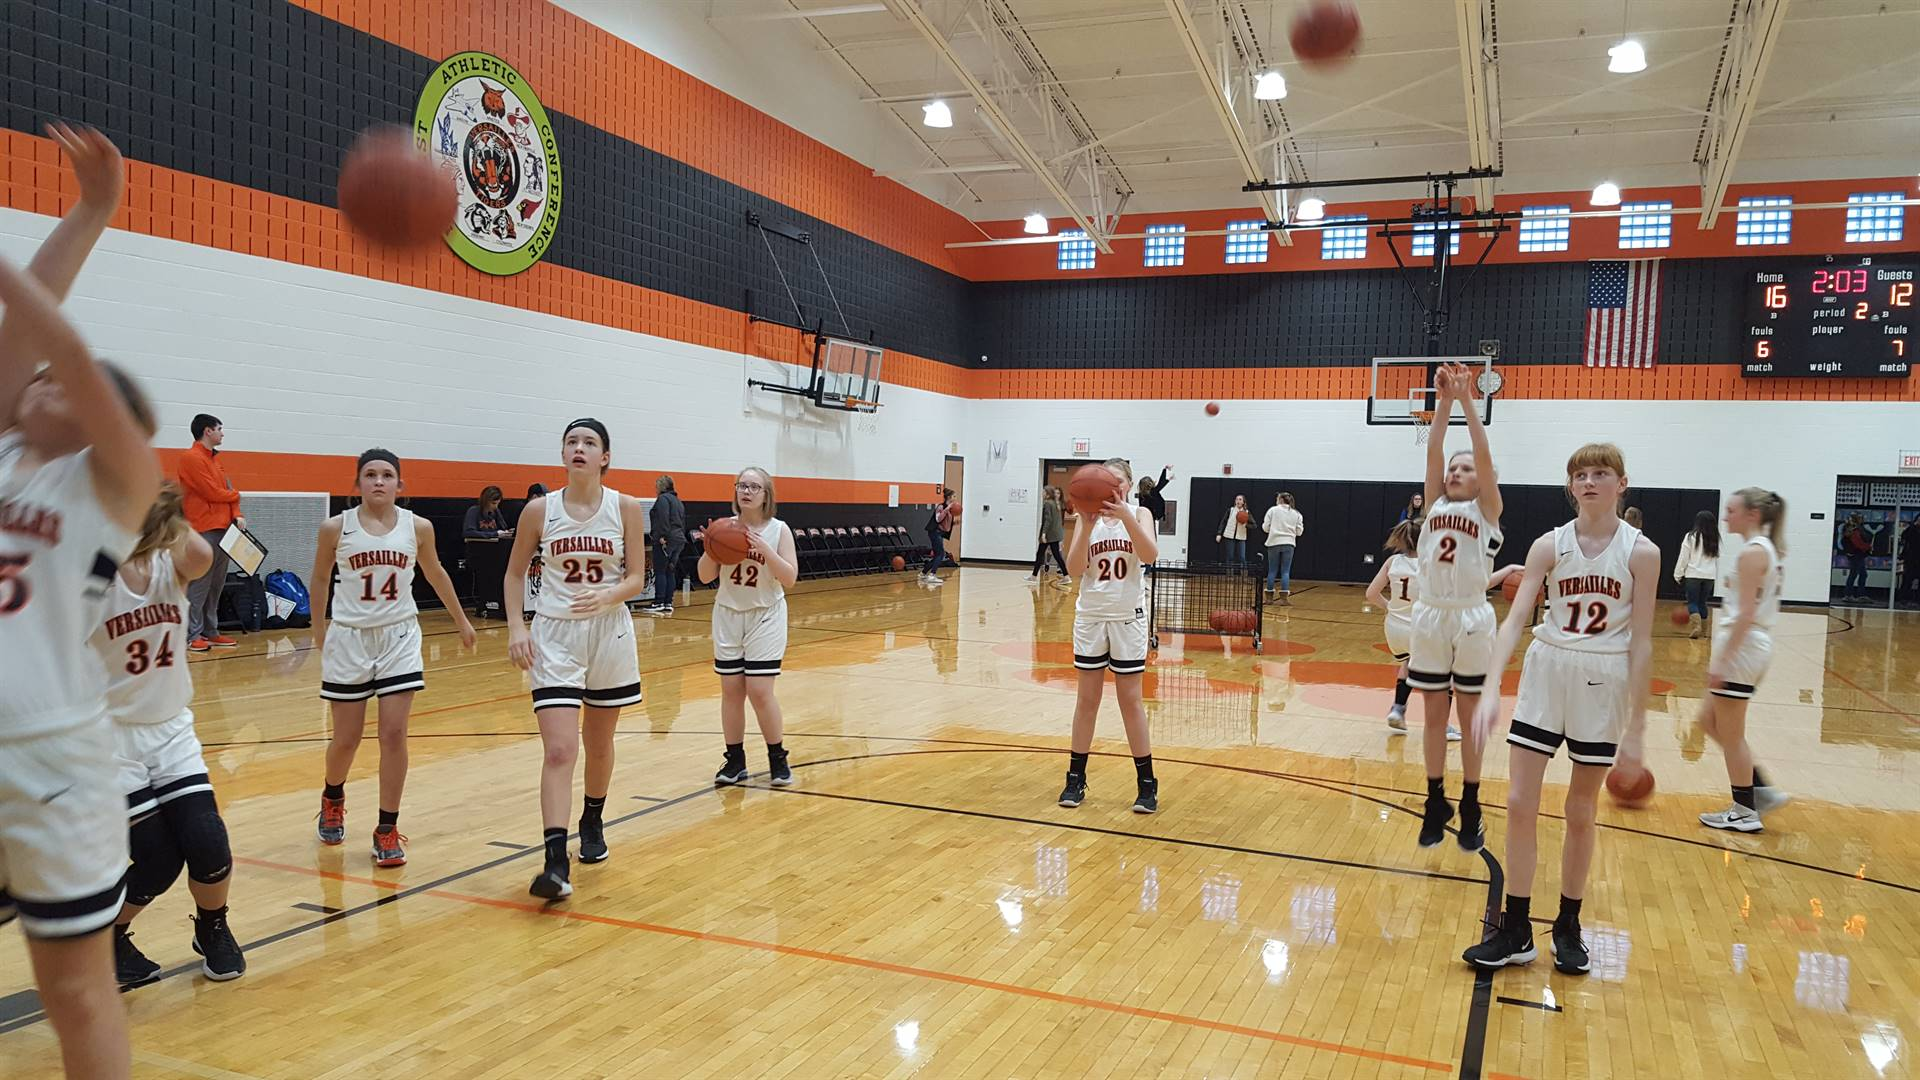 7th Grade Basketball warming up